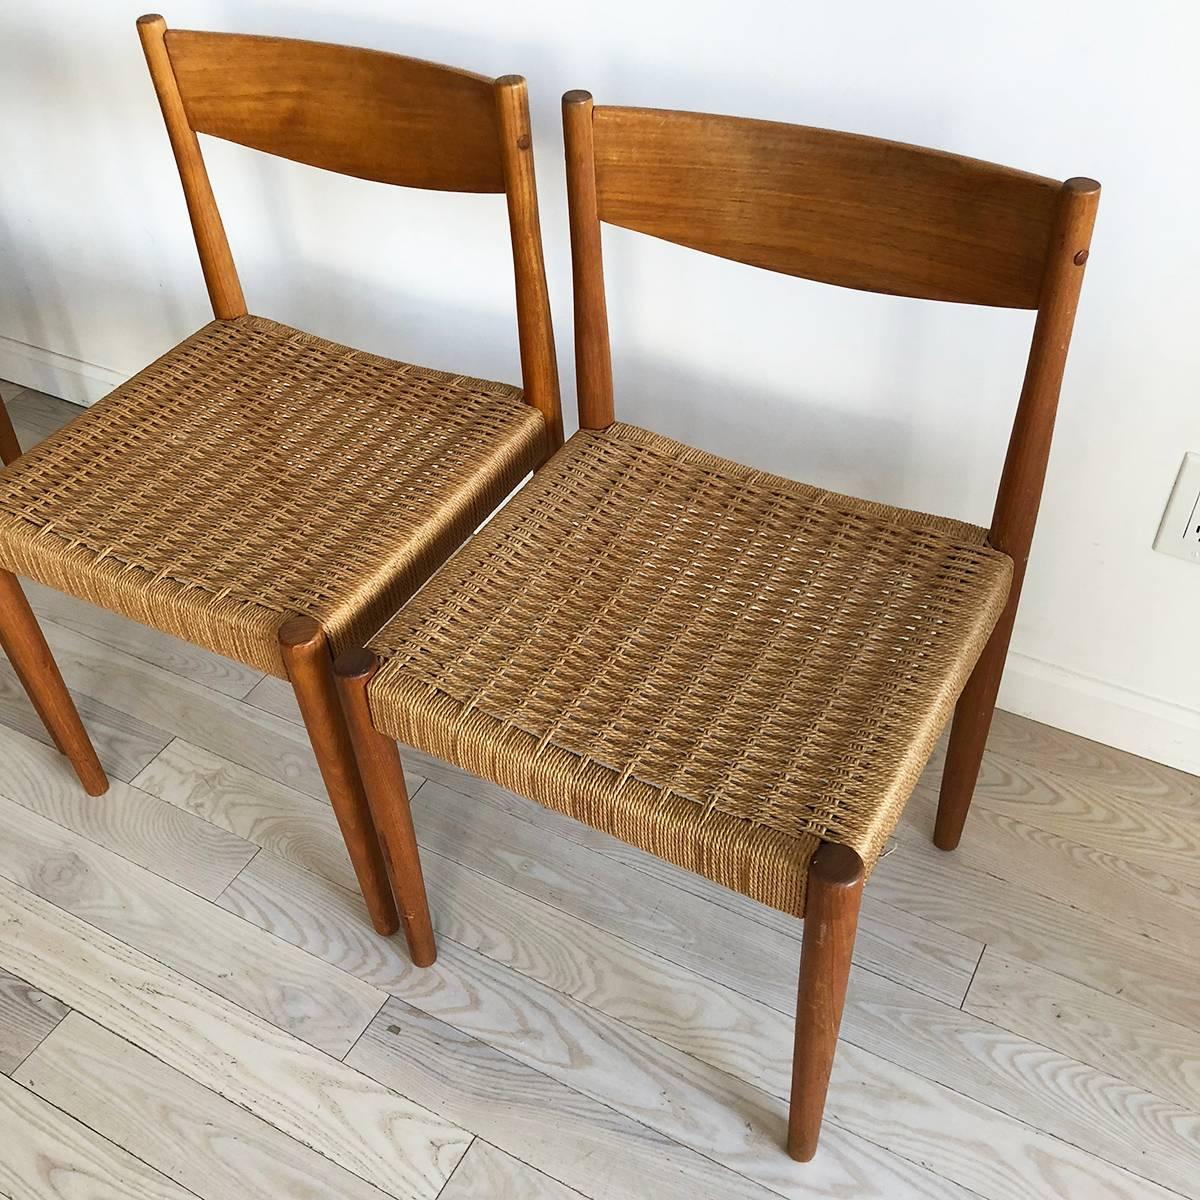 Midcentury Teak And Rope Dining Chairs, Set Of Four At 1stdibs